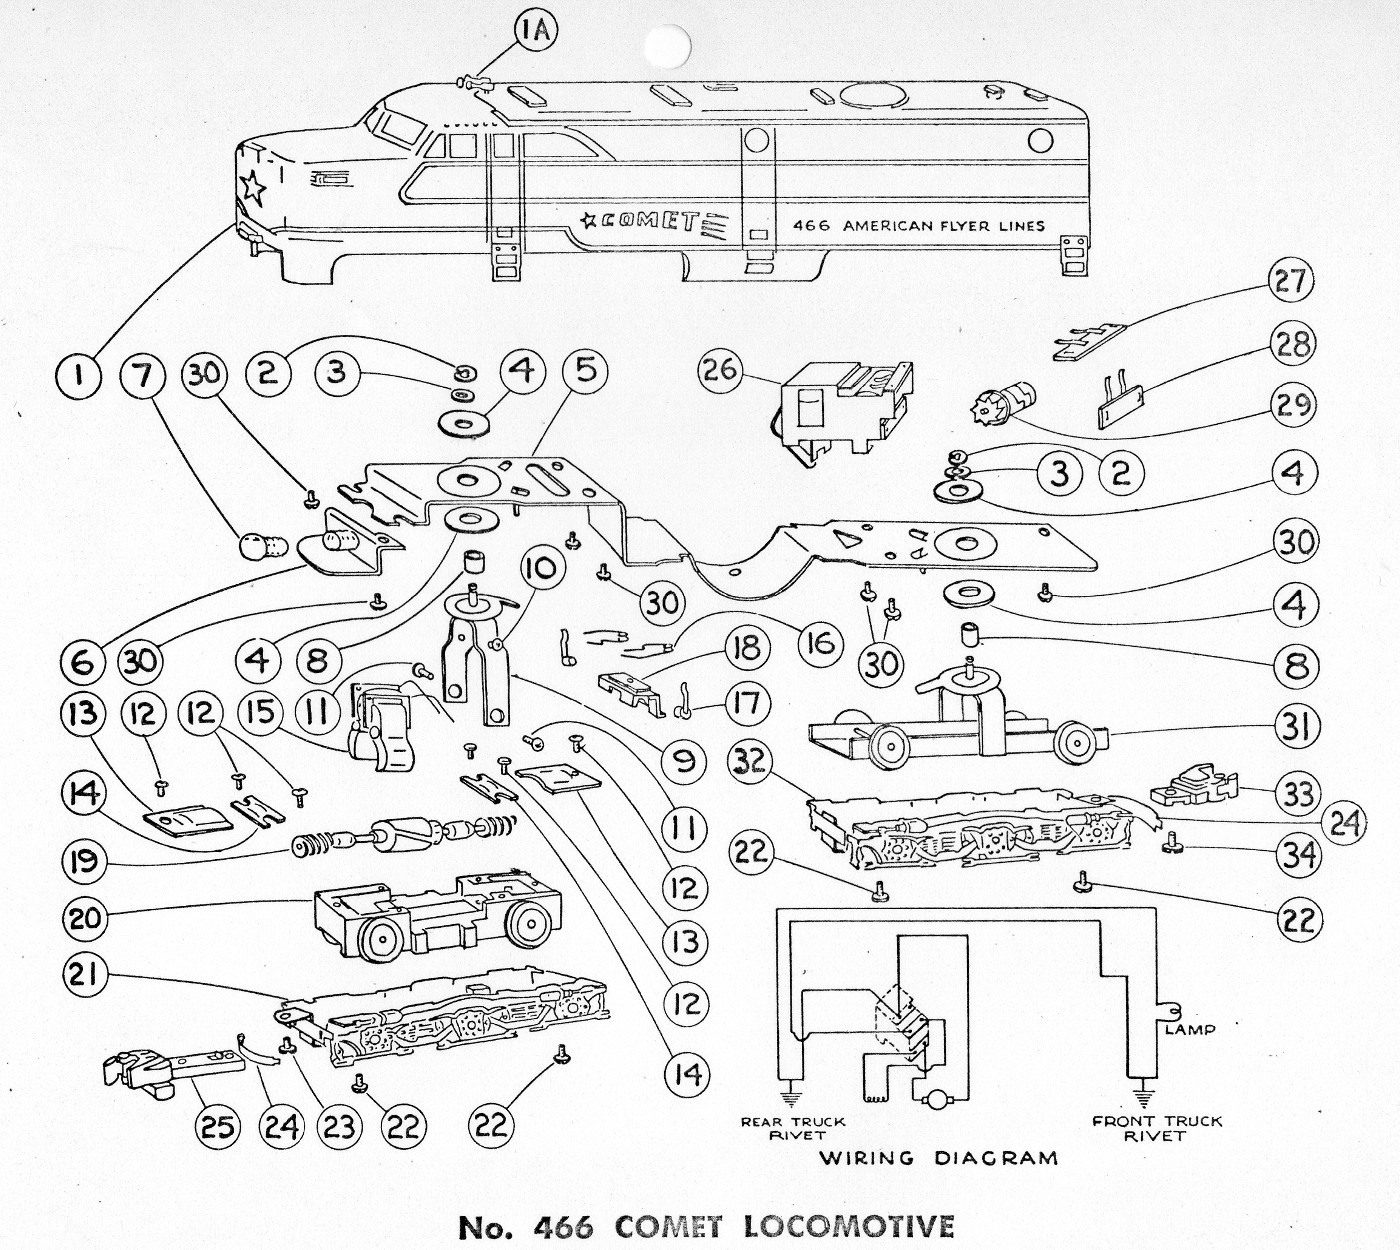 american flyer locomotive 466 parts list  u0026 diagram